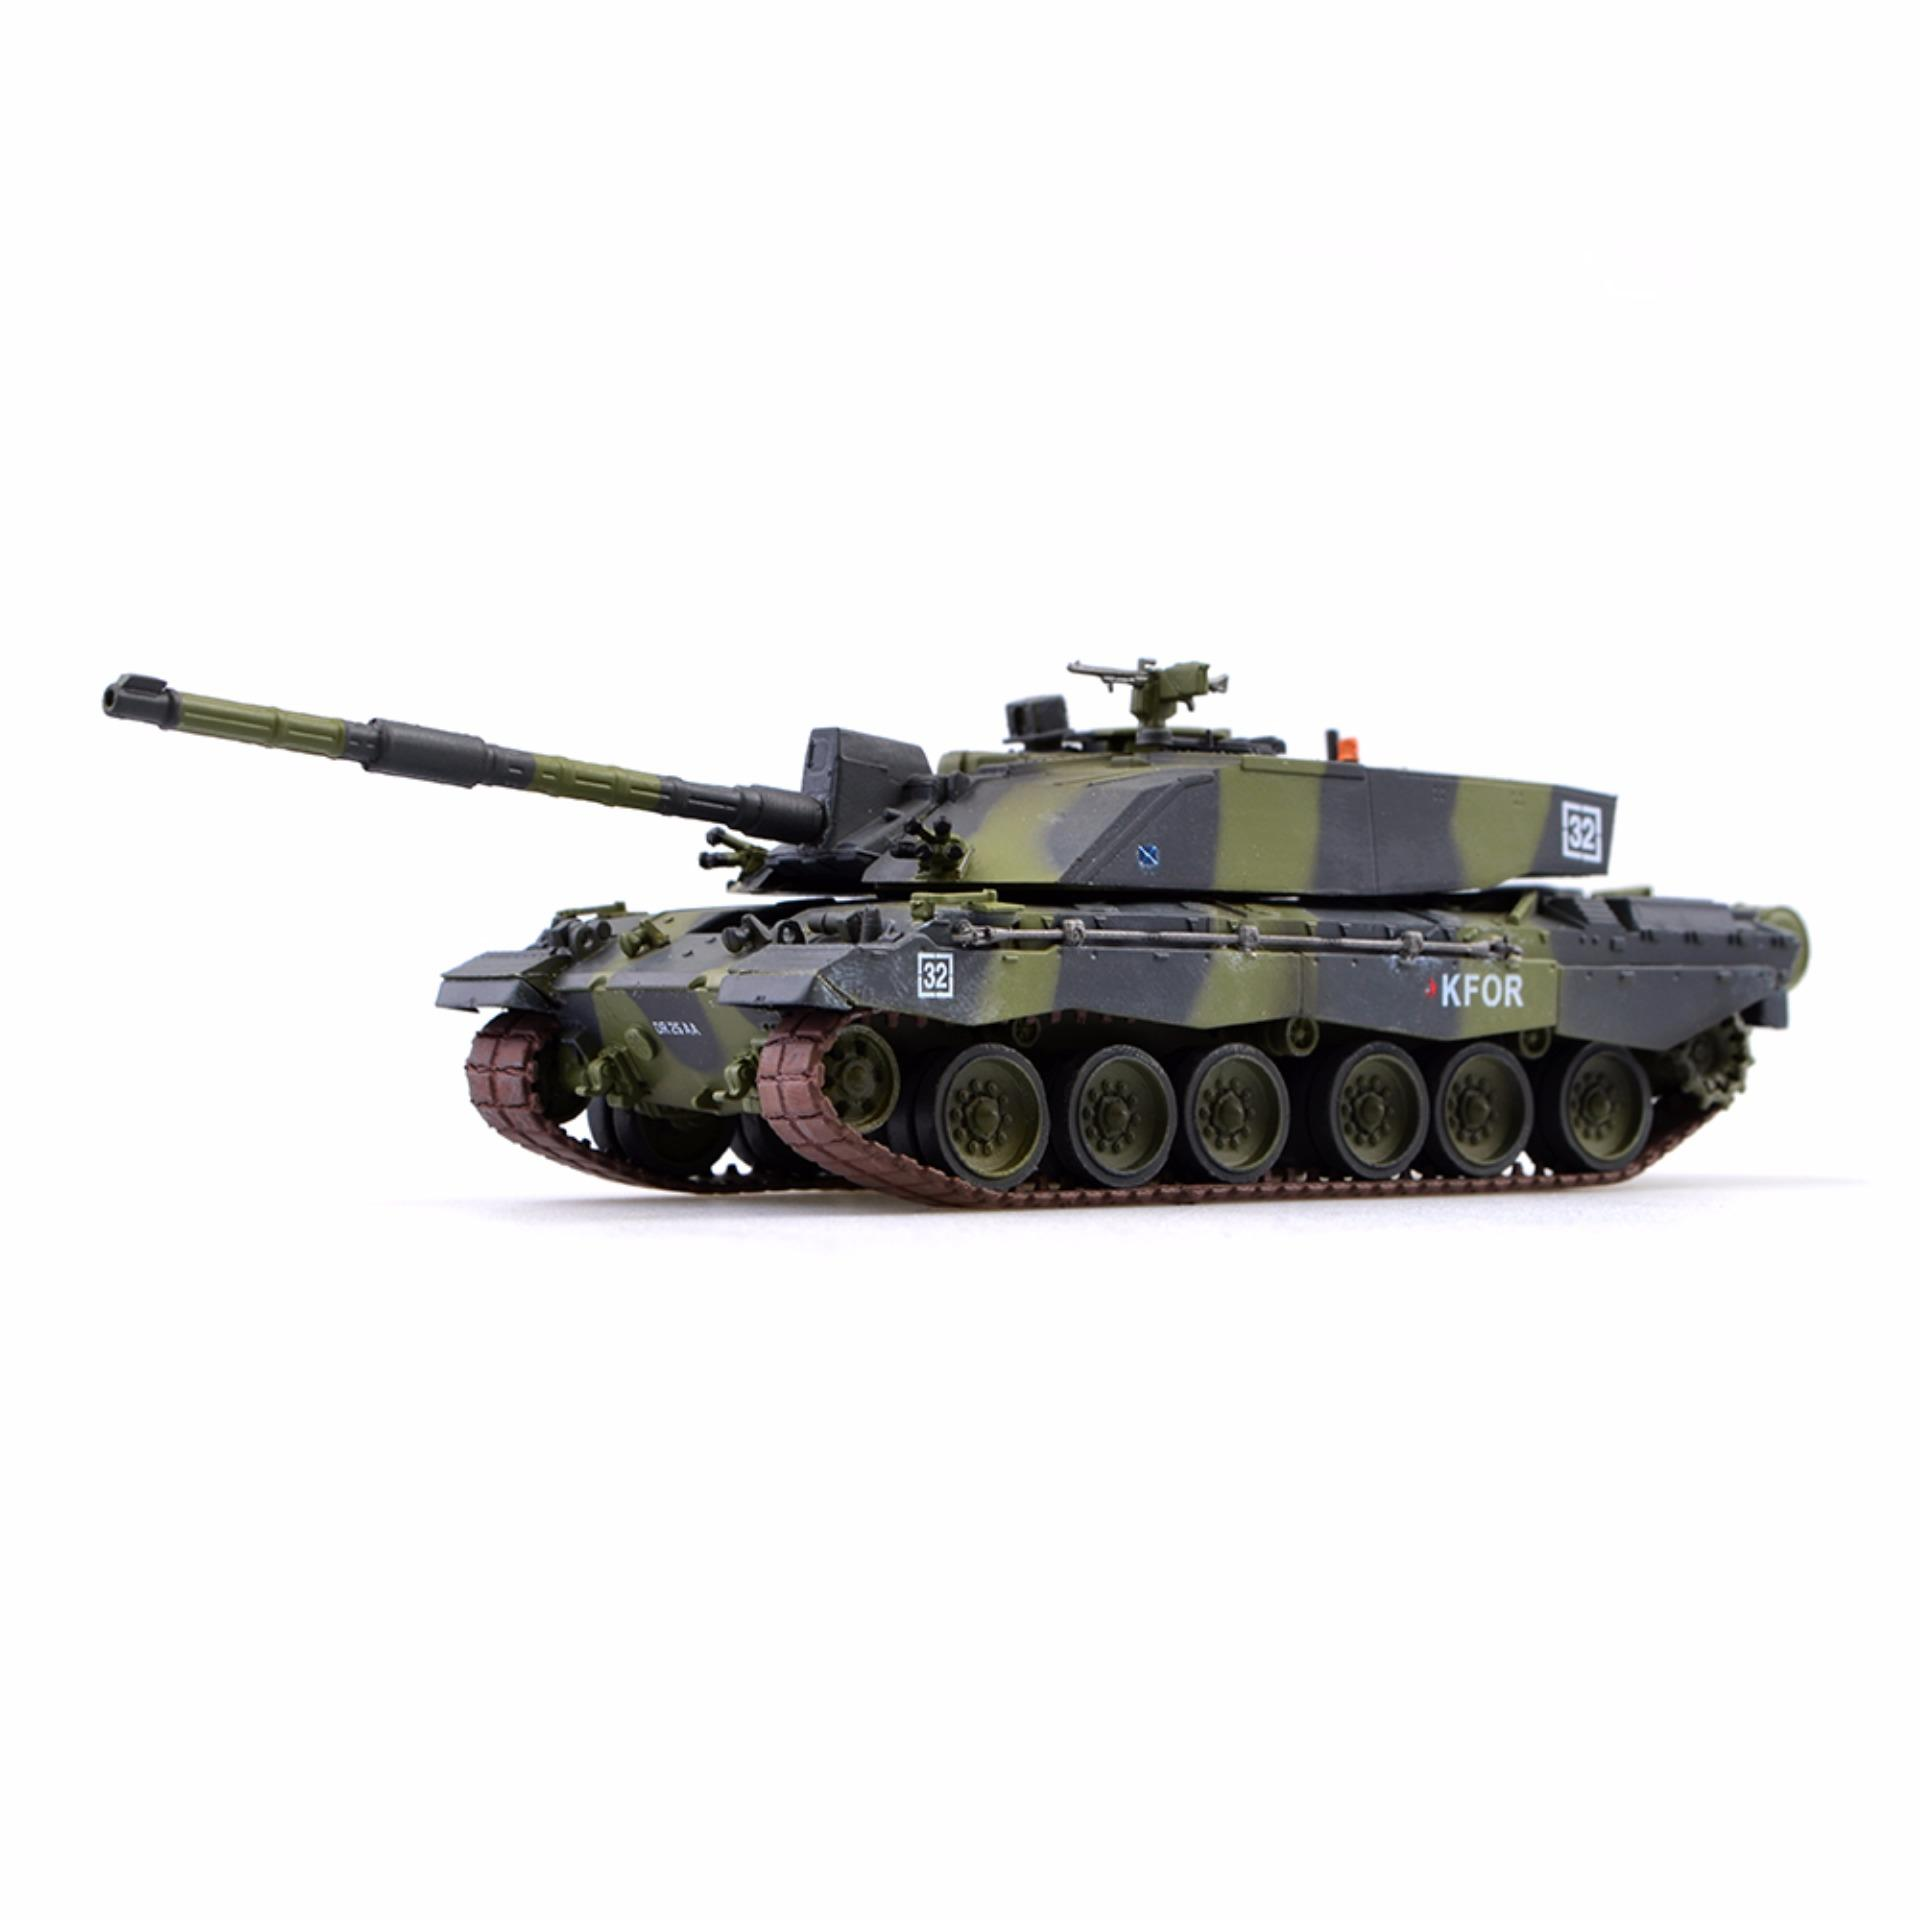 Pencarian Termurah Easy Model Challenger Ii British Army Miniatur Wl Toys New L999 30 Km H Speed With Servo Rtr Racing Buggy Panser 16 Cm 172